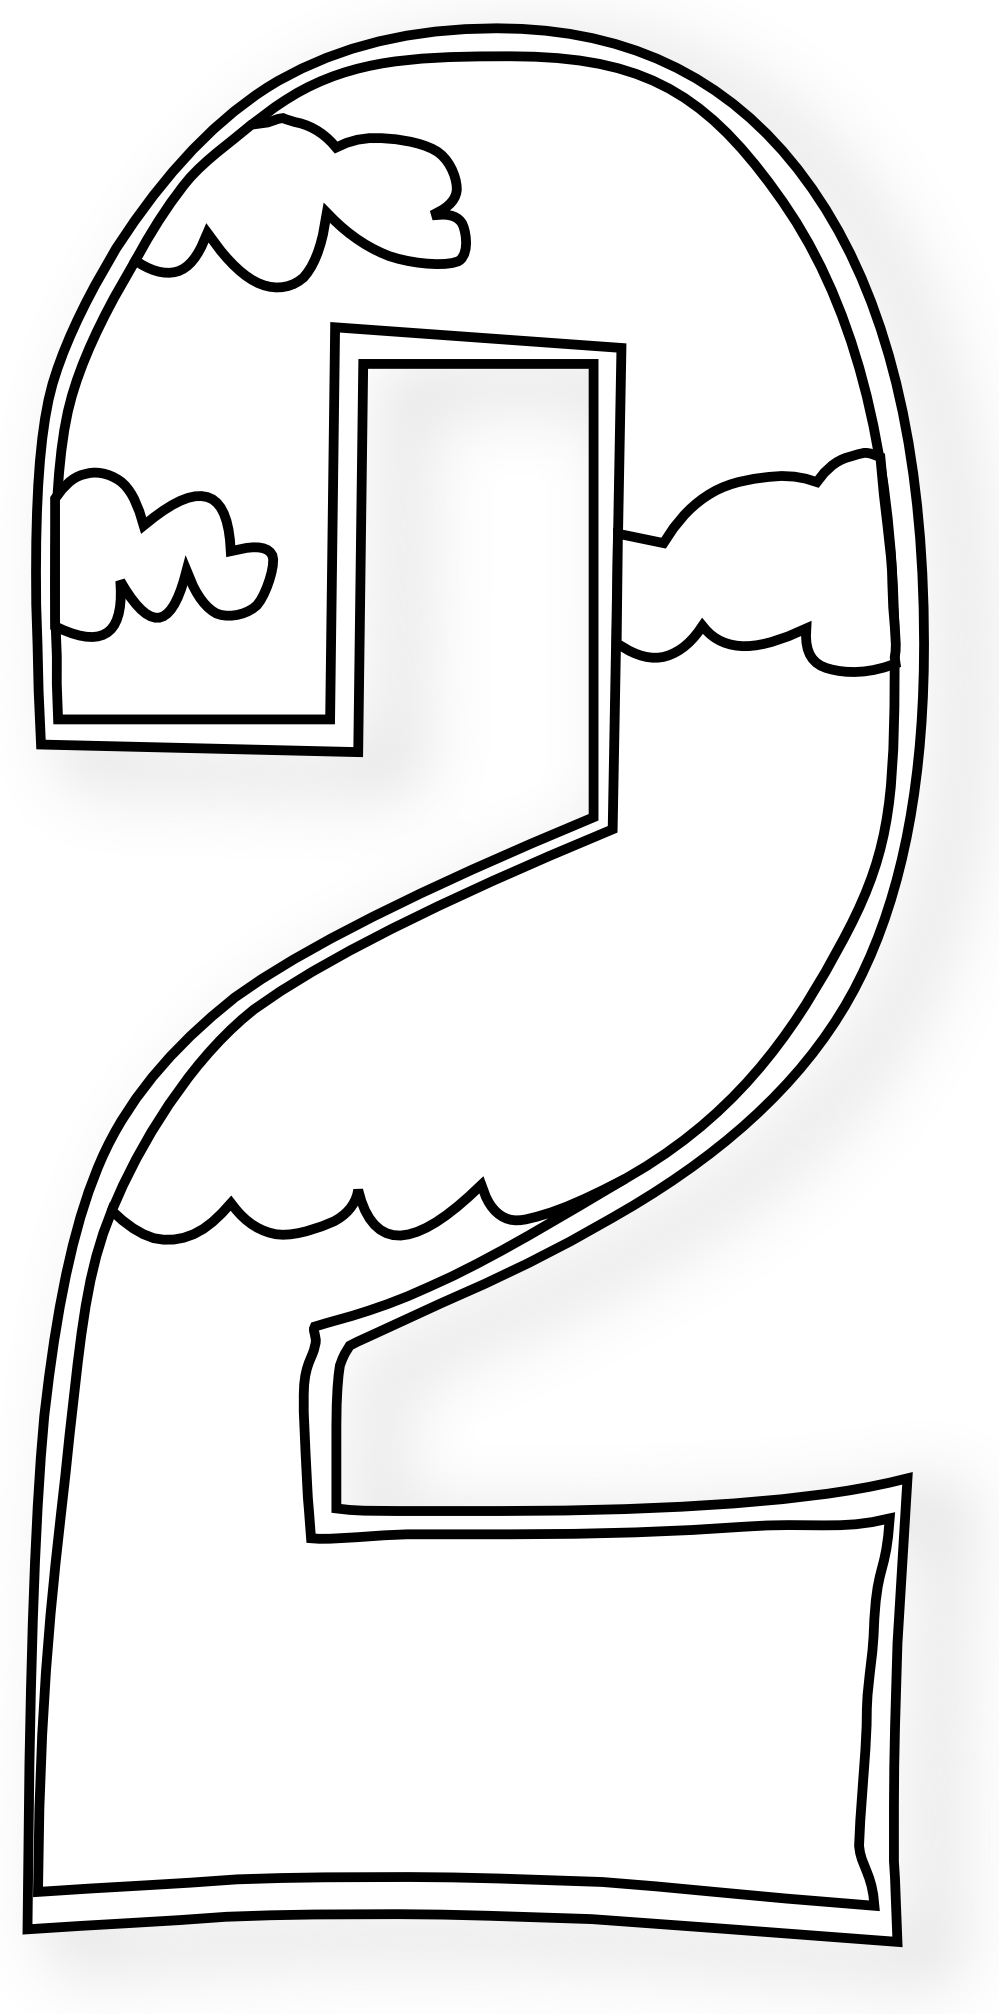 7 day creation coloring pages photo - 1